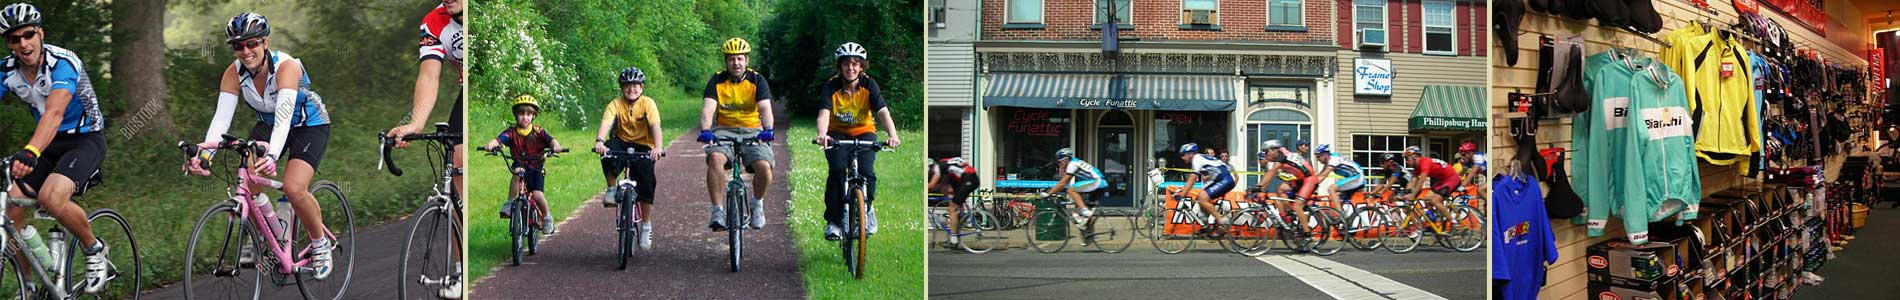 Cycle FunAttic - Your Family Biking Store  Serving the bicycling community since 1998 in Phillipsburg, NJ.